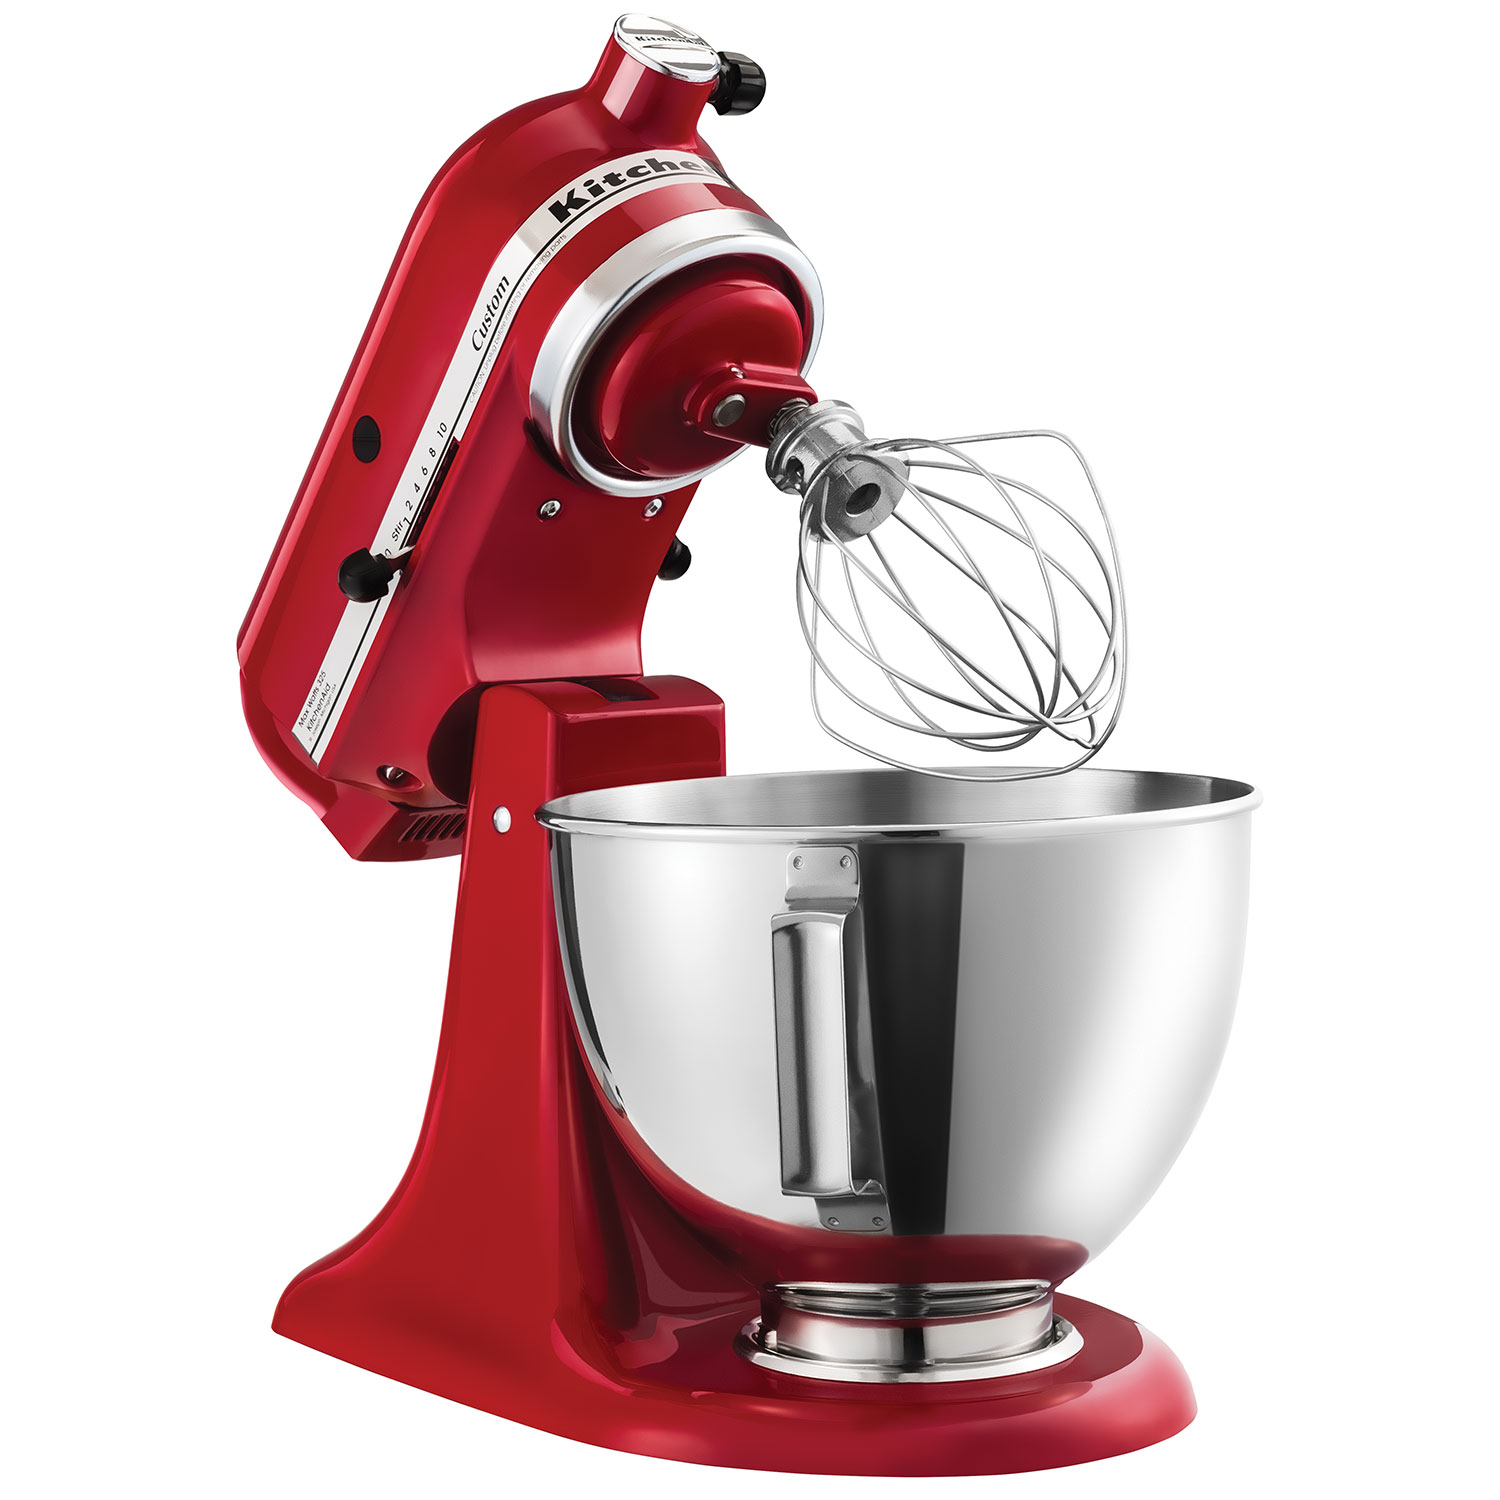 Kitchen aid heavy duty - Kitchenaid Custom Stand Mixer 4 26l 325 Watt Empire Red Stand Mixers Best Buy Canada